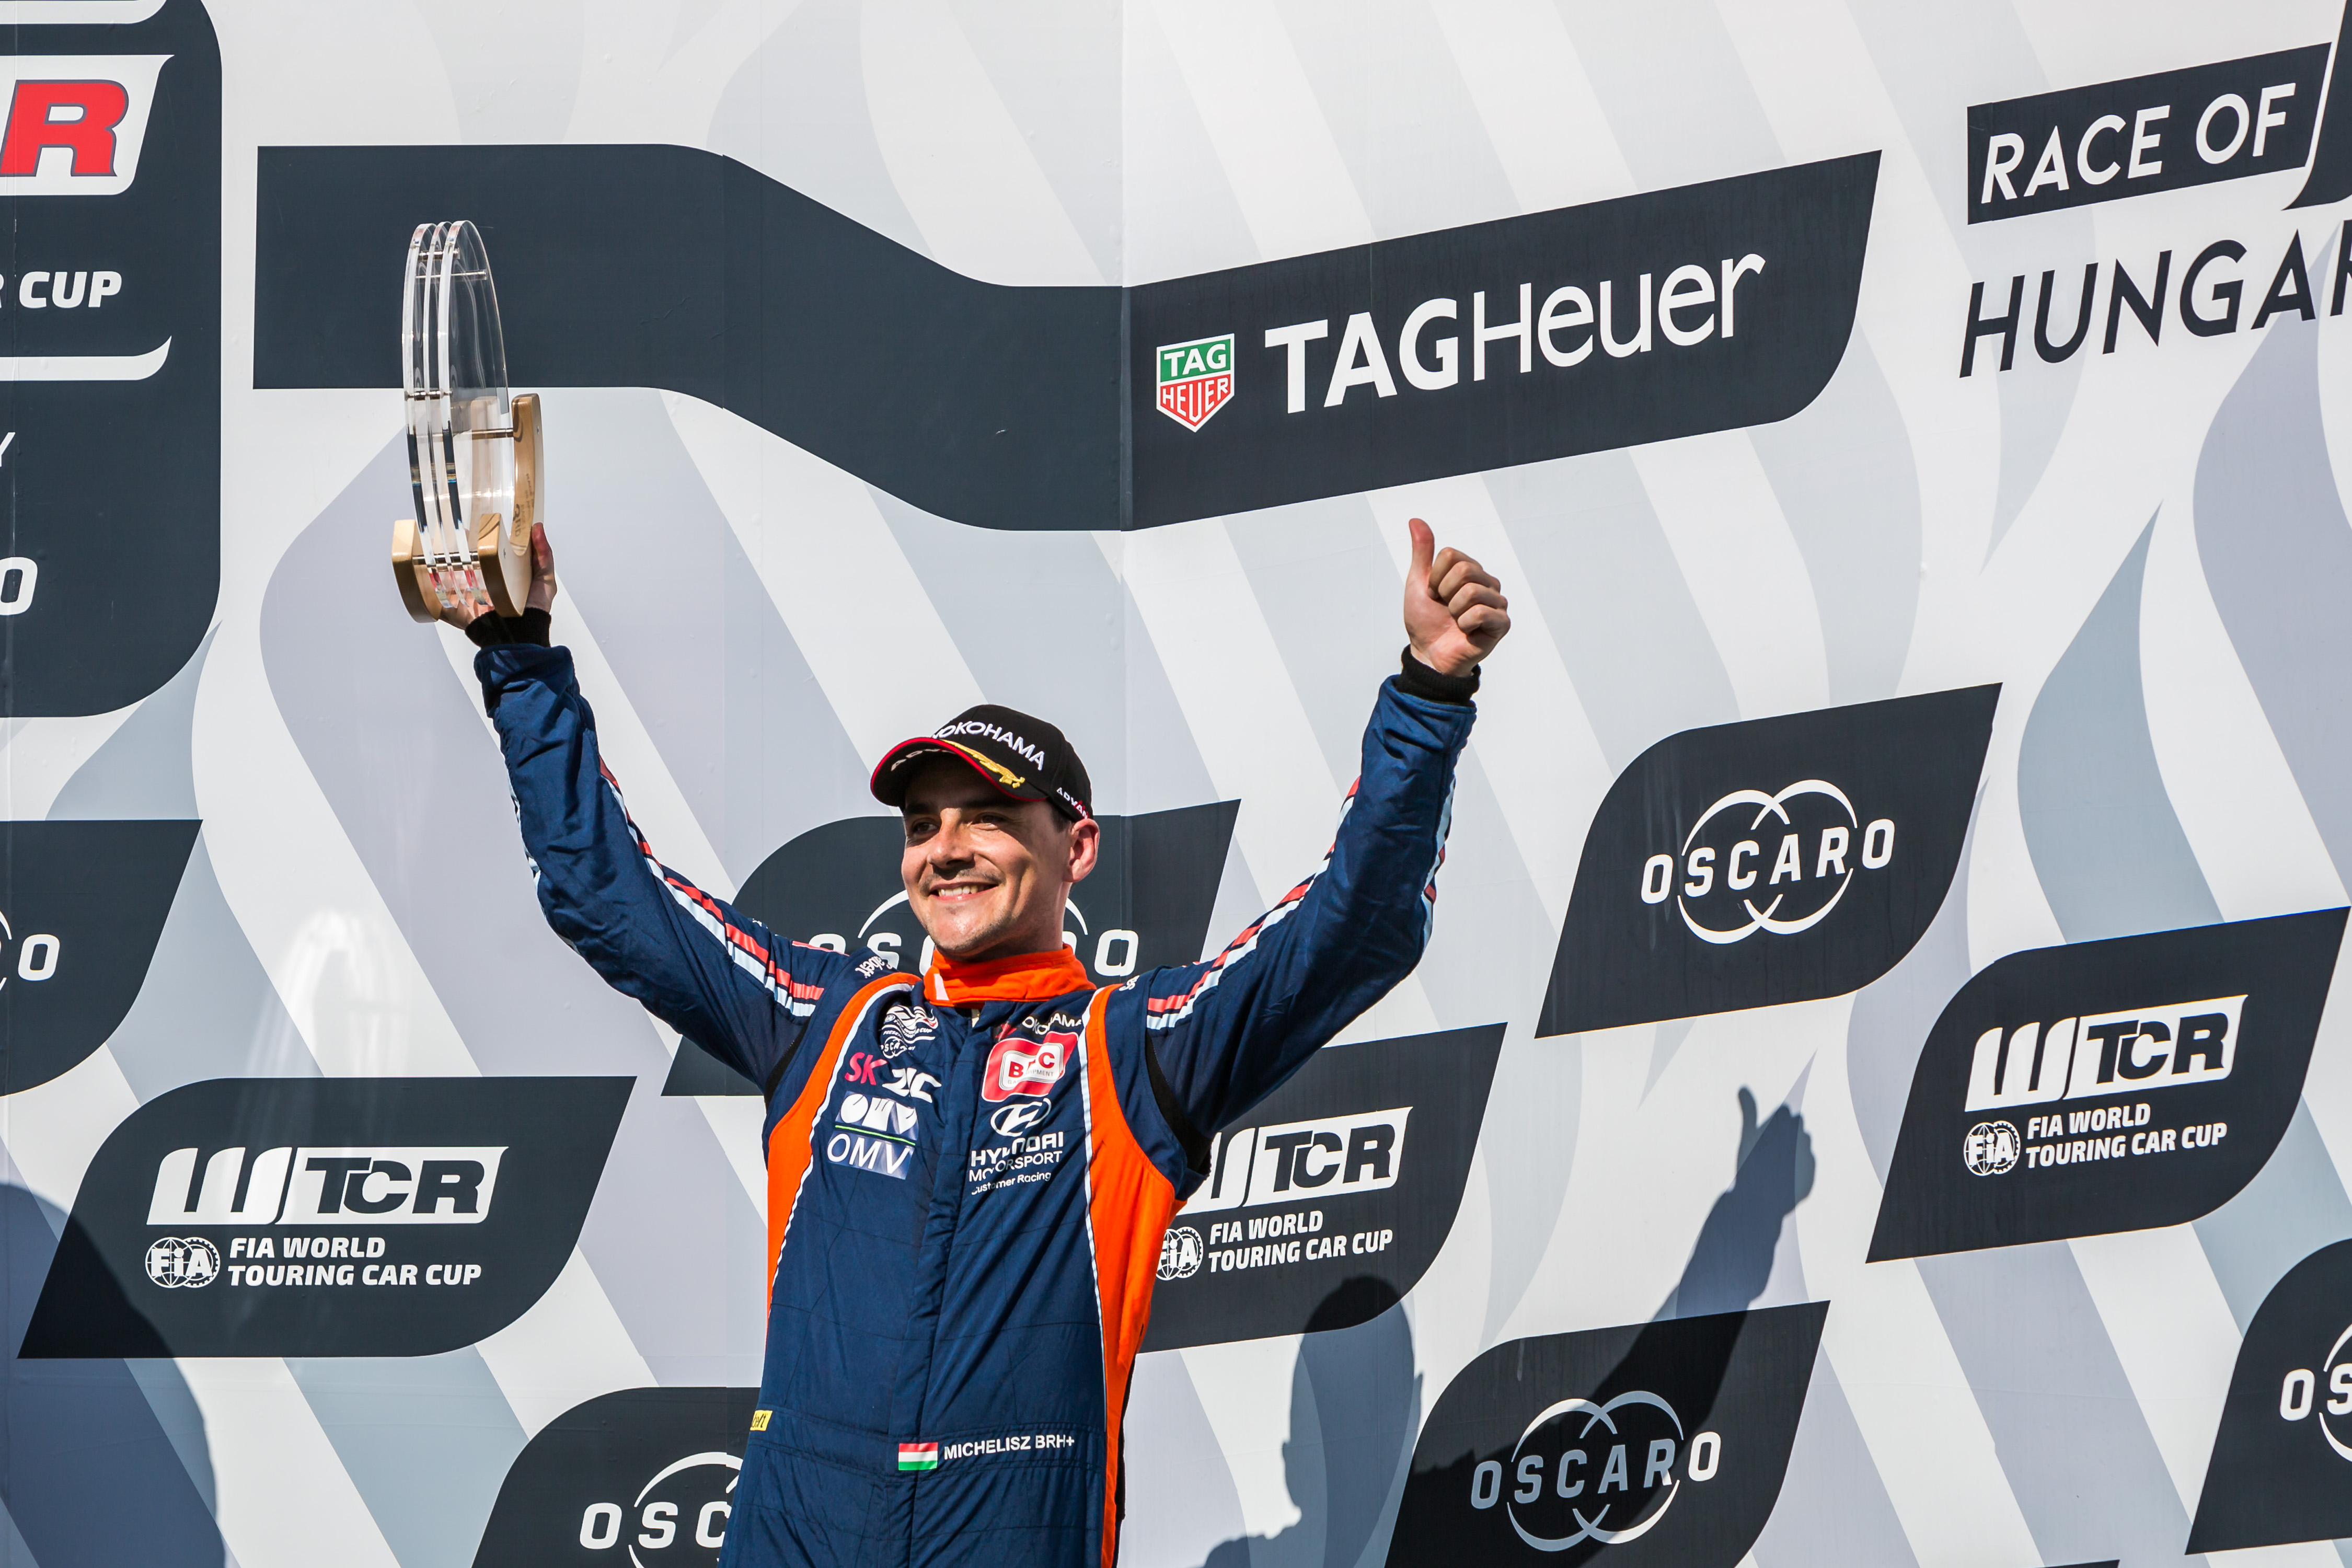 Michelisz not giving up on Hungary WTCR win